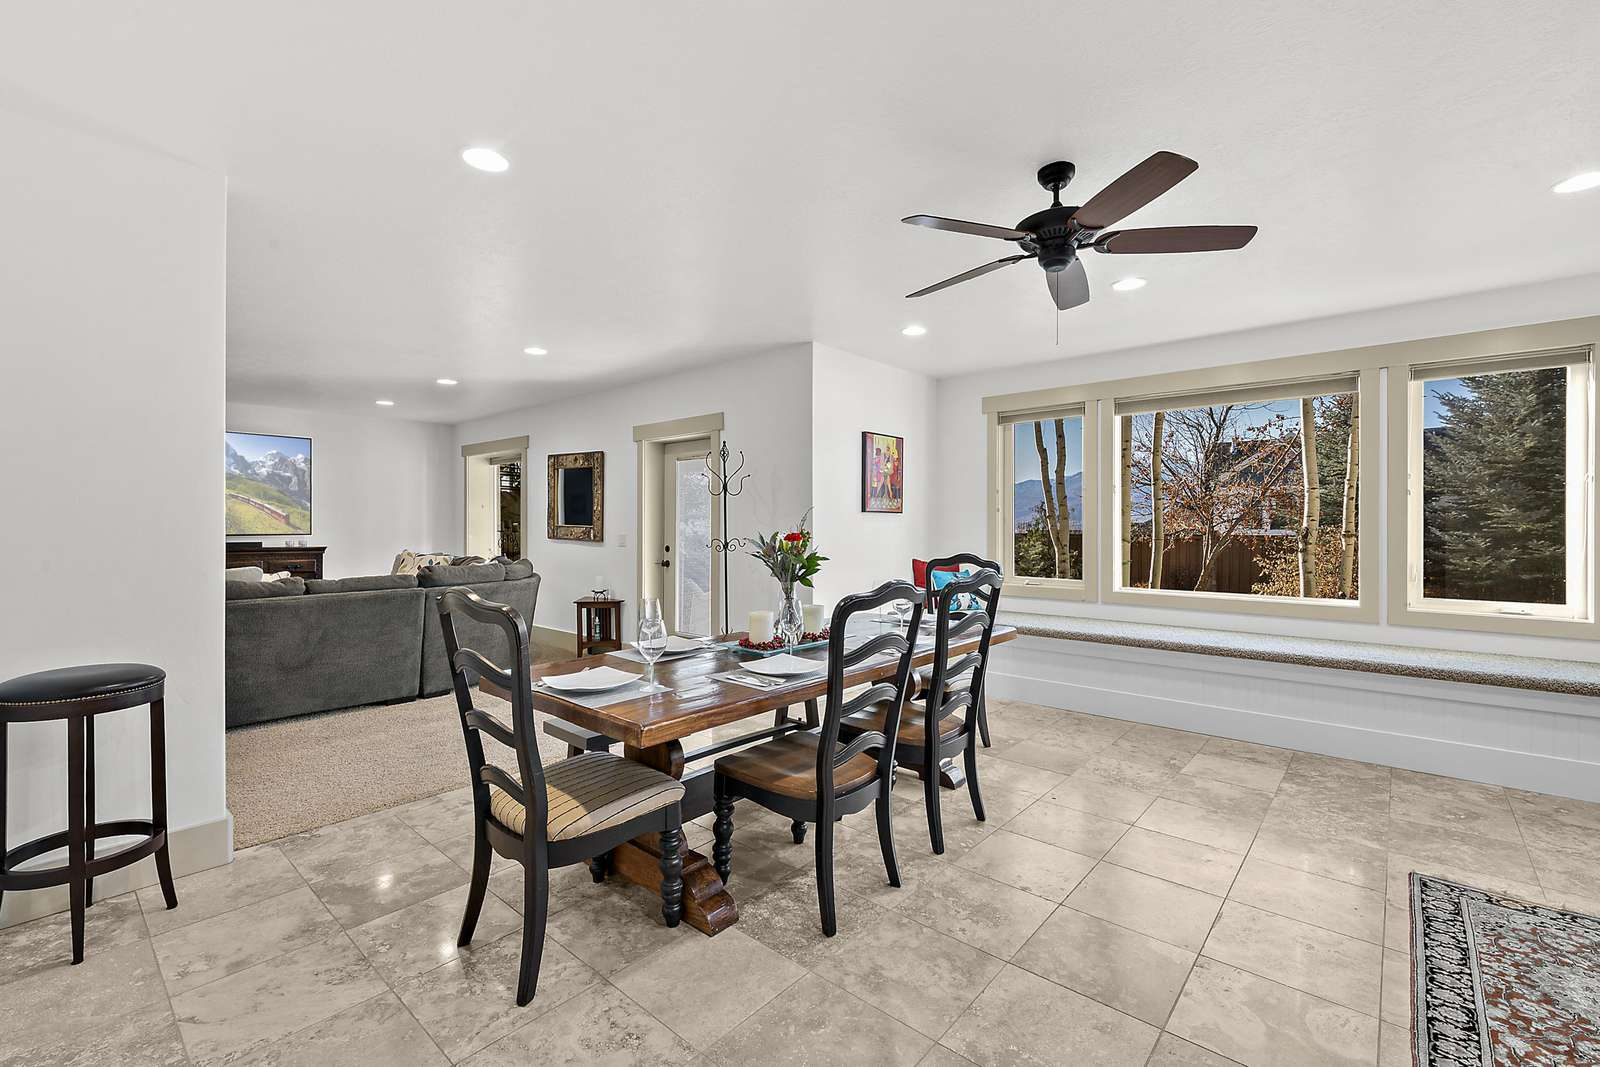 Dining area near large windows and bench seating